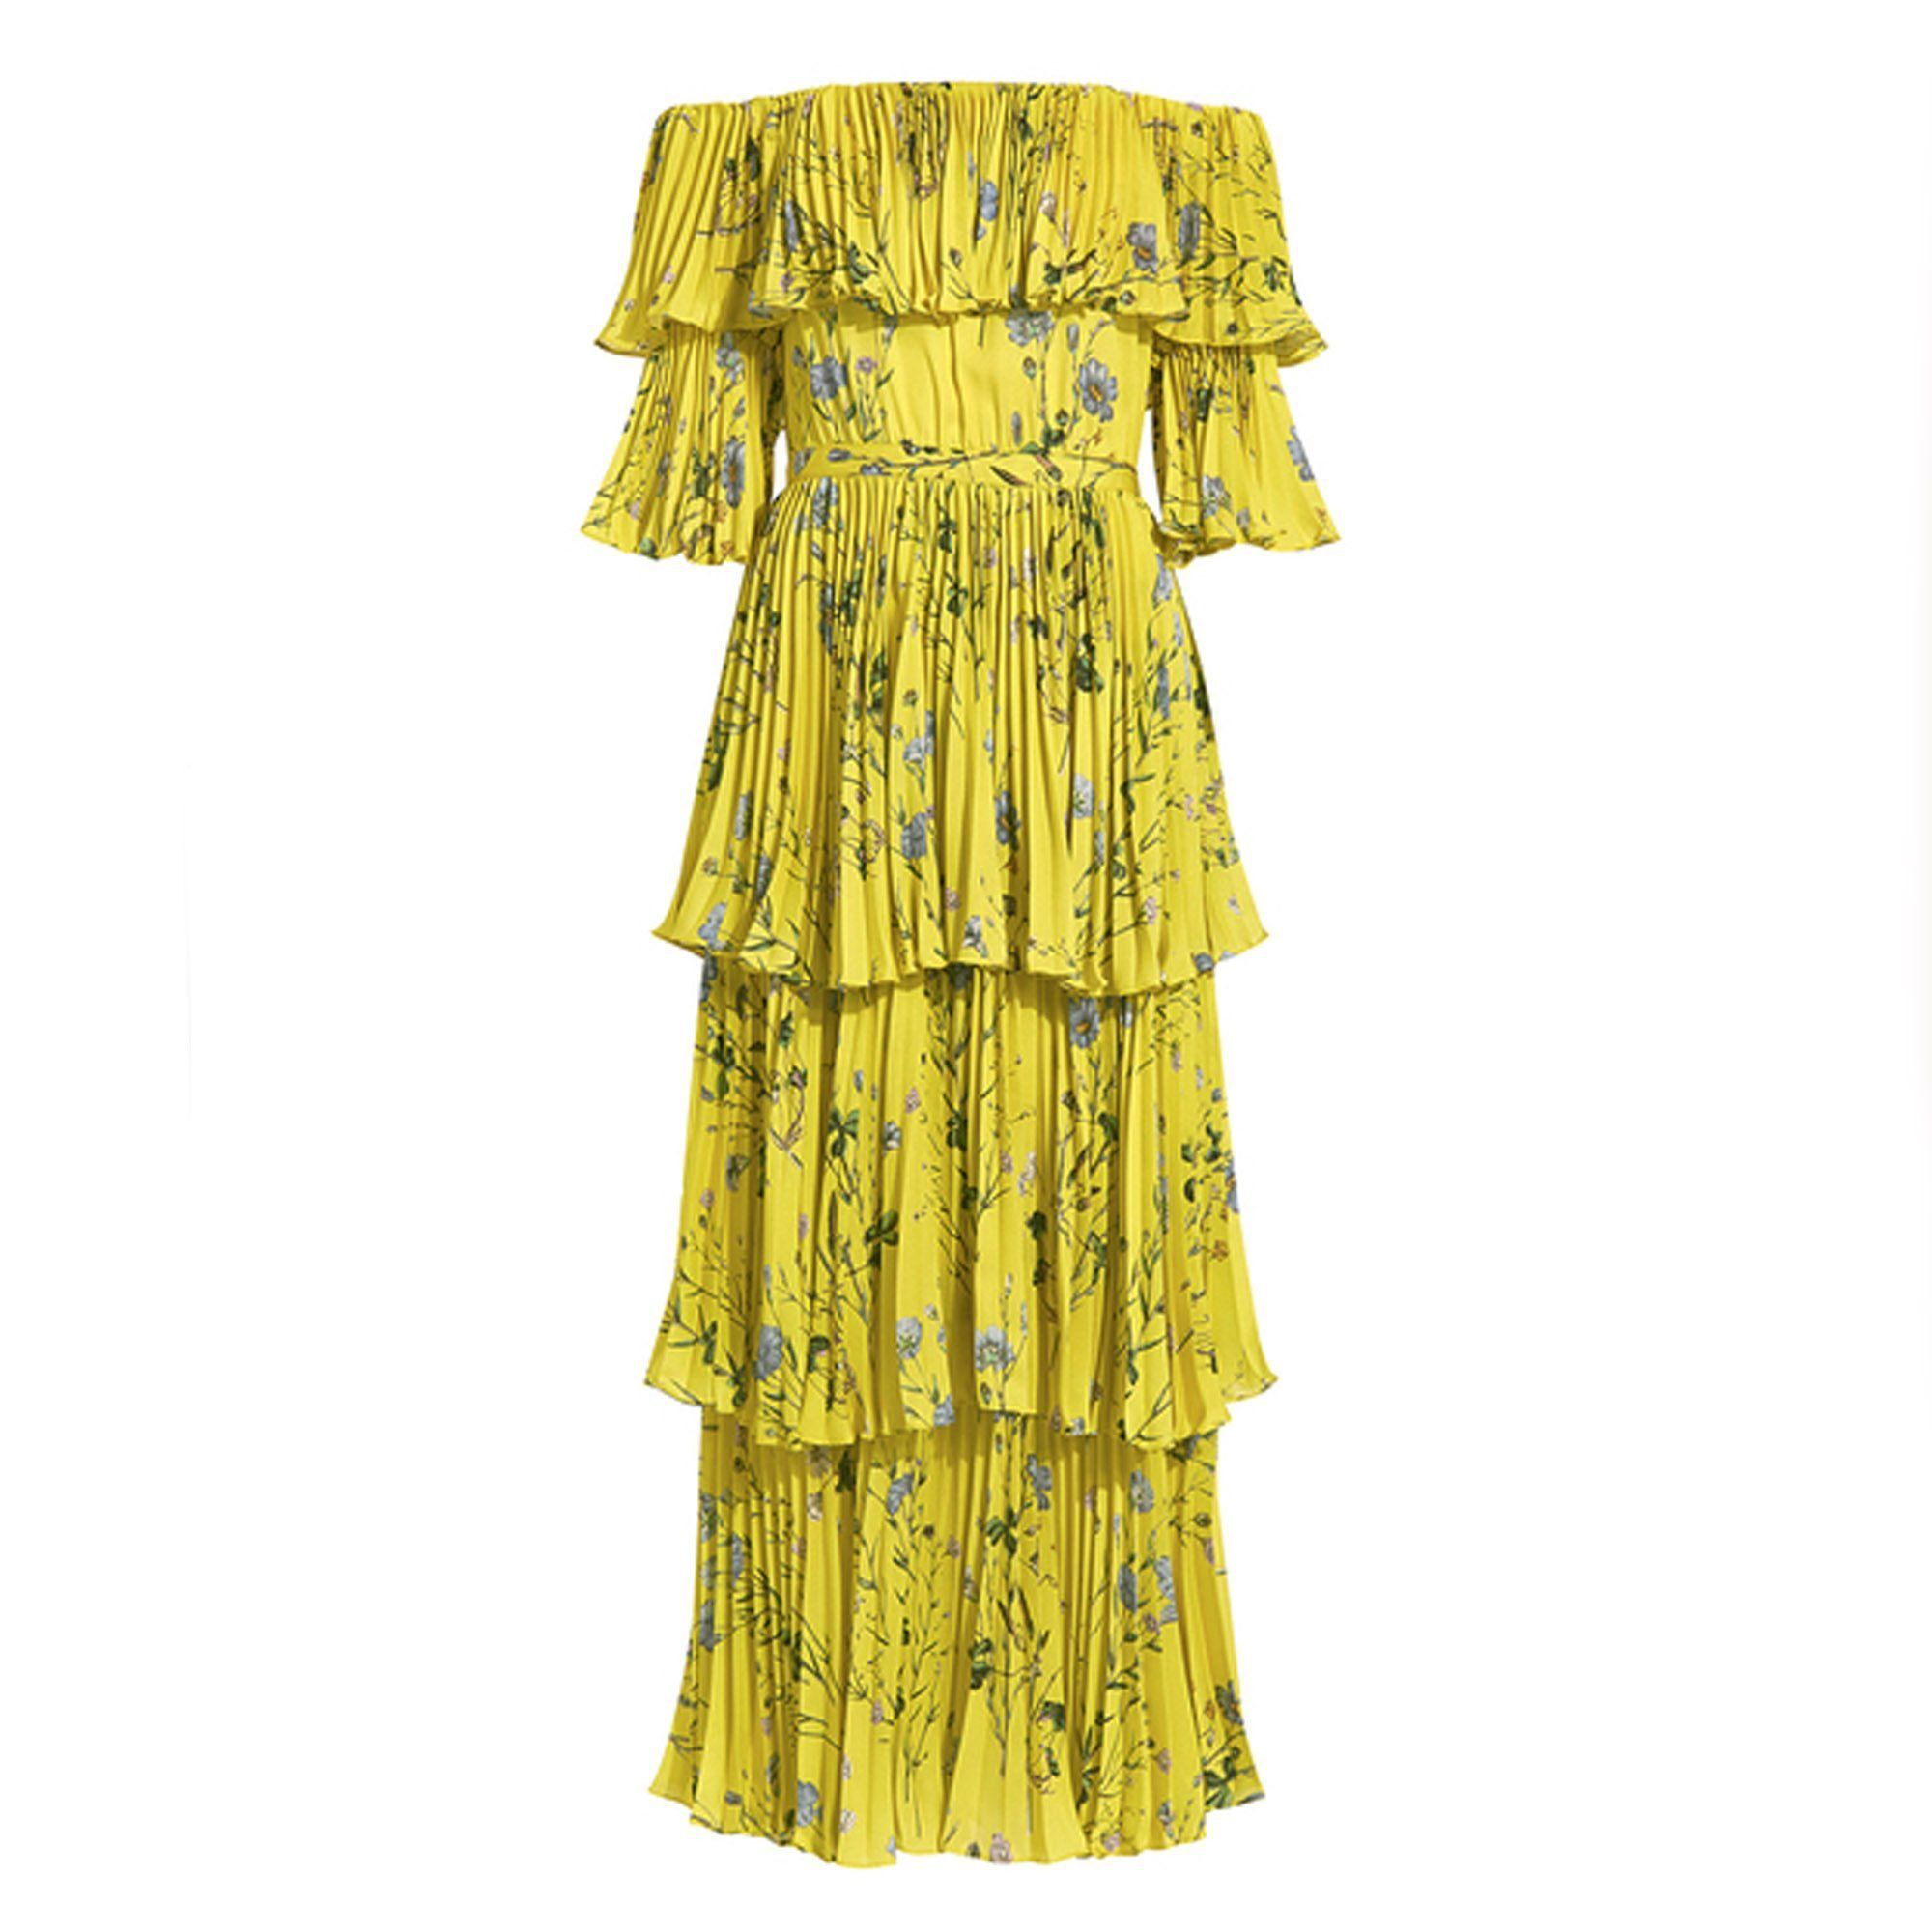 Self-portrait Floral Printed Yellow Off Shoulder Tiered Maxi Dress